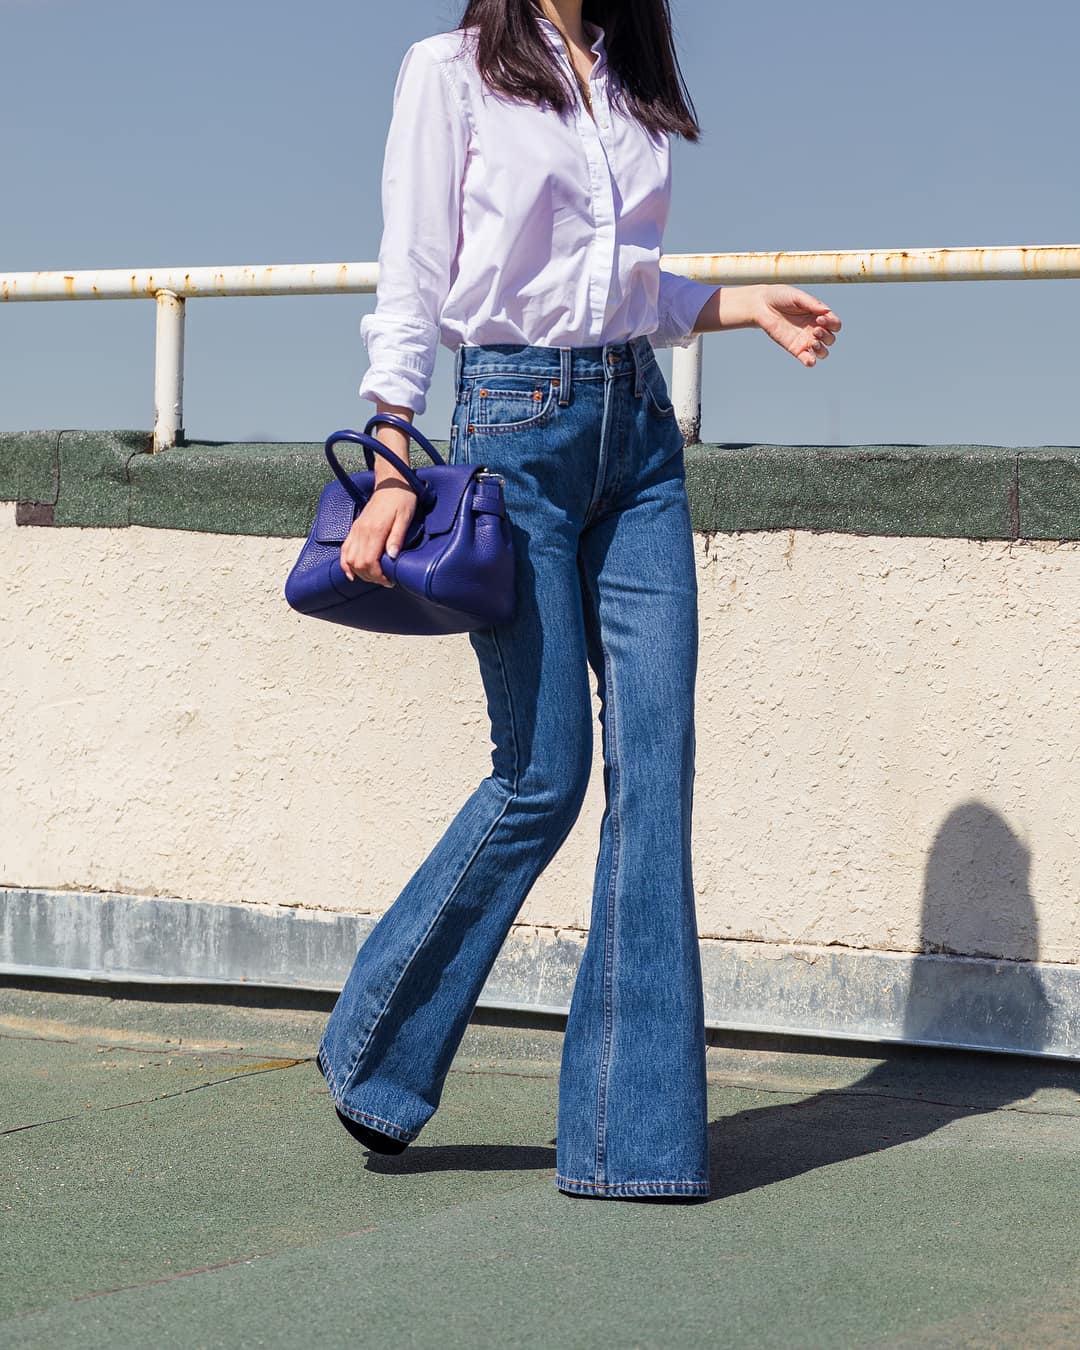 Womens Jeans 2021 Top Trendy Styles And Ideas Of Jeans For Women 2021